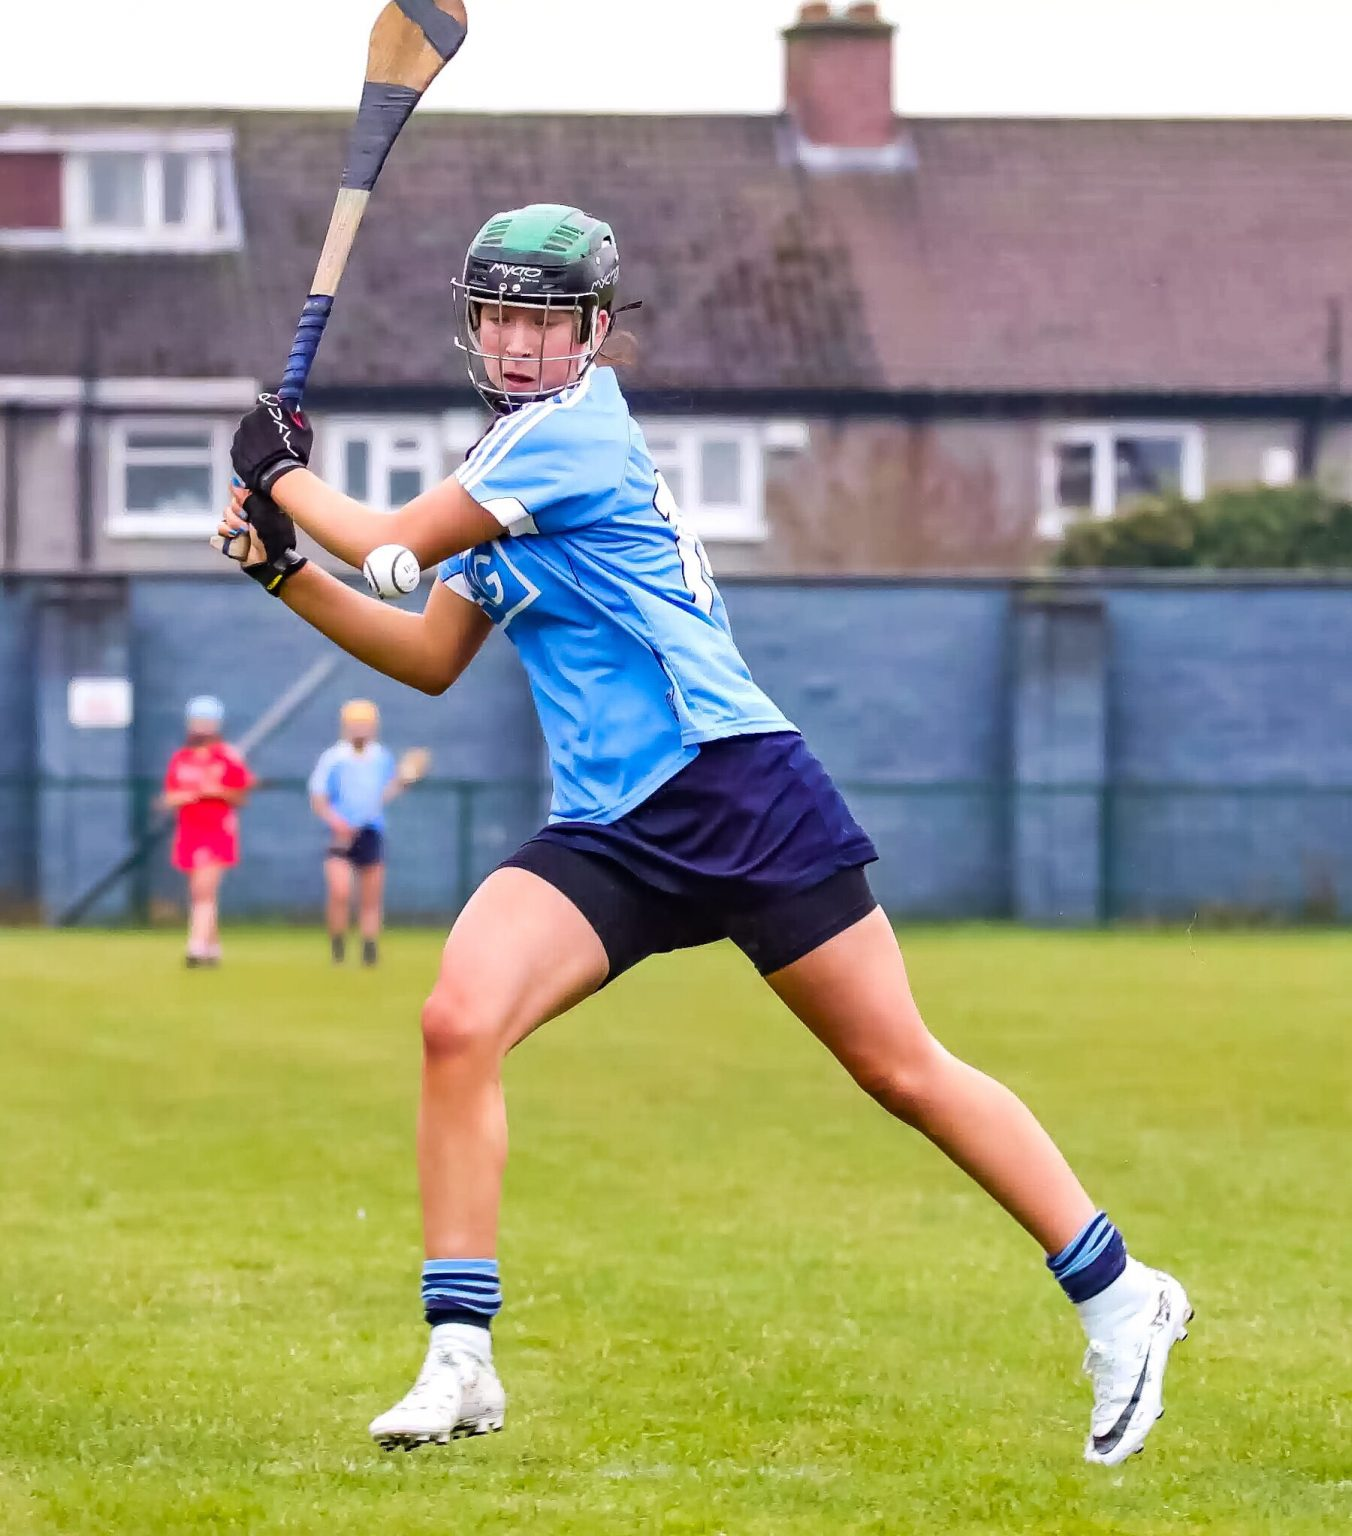 Dublin Camogie player in a sky blue jersey, navy skort, black and green helmet striking a ball with her hurl during Leinster Minor A game